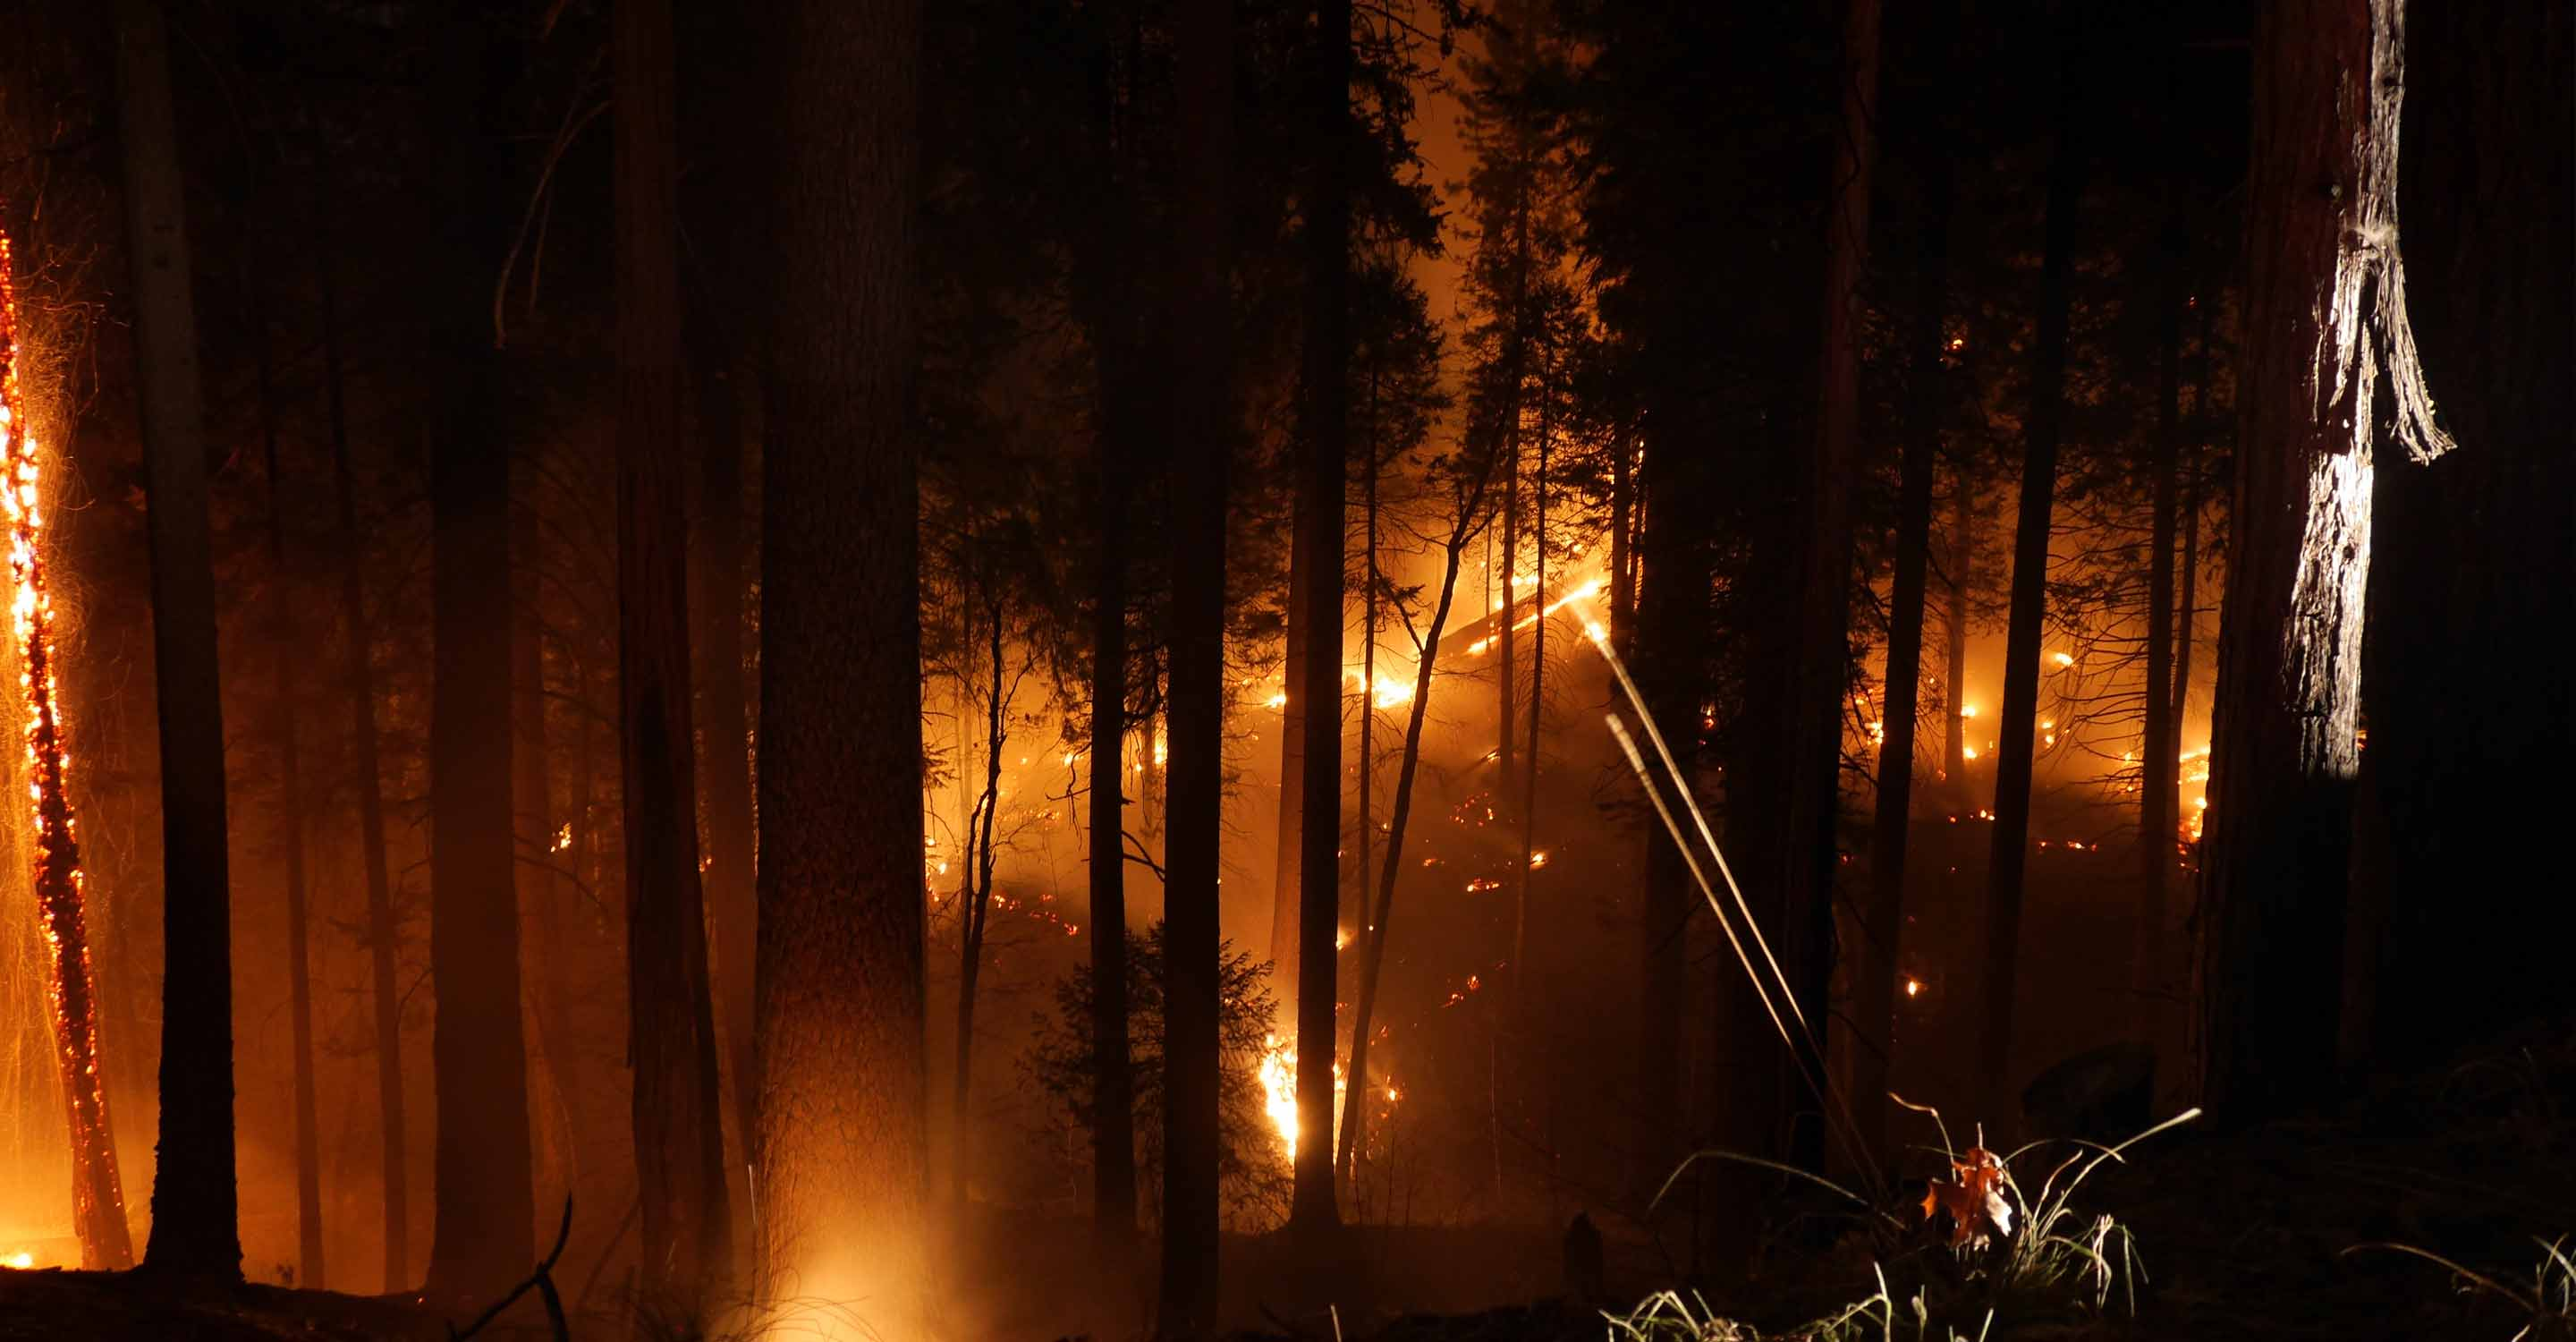 Giant sequoia groves threatened by wildfire